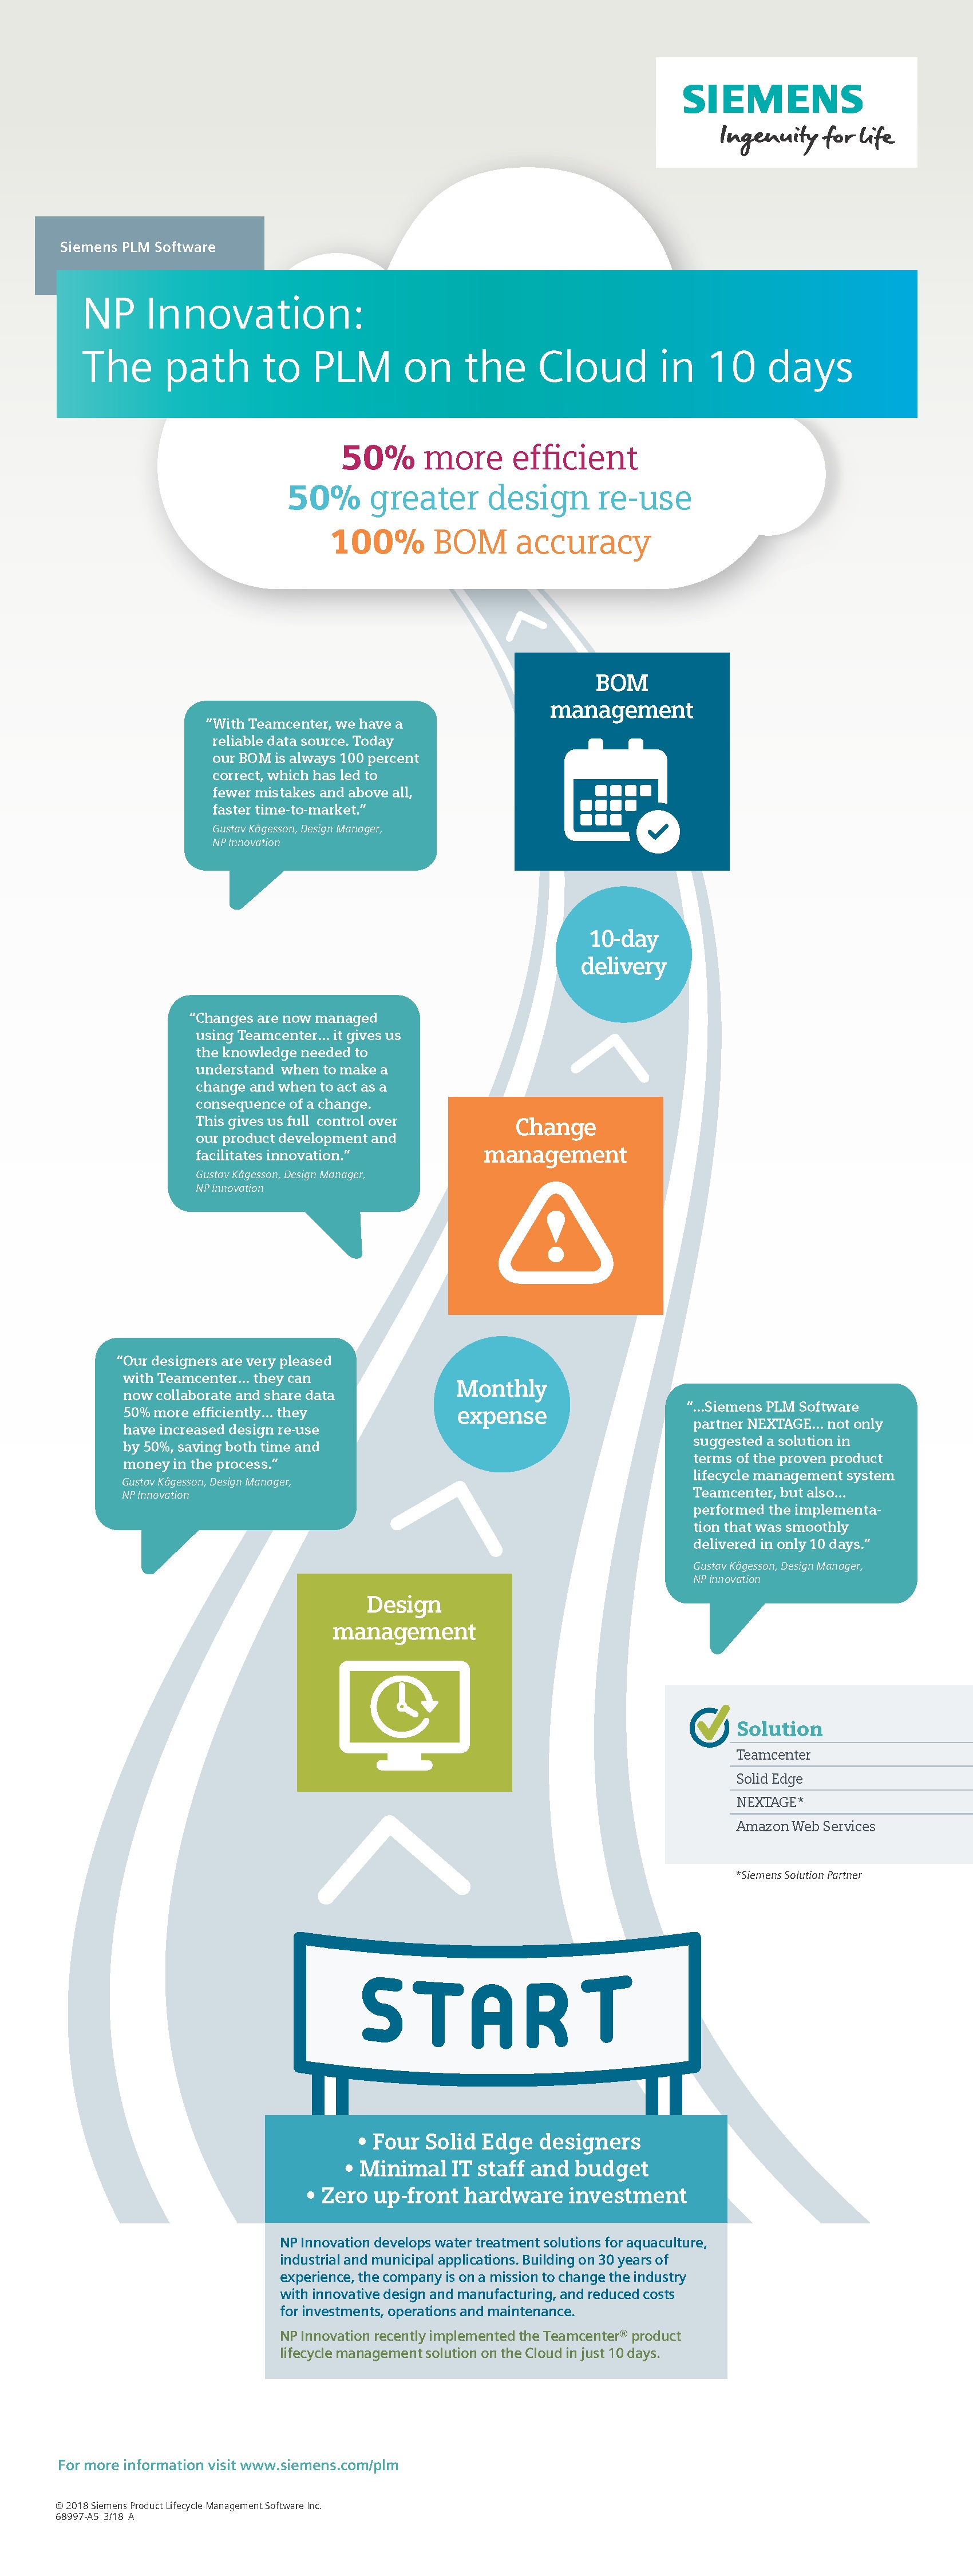 Siemens-PLM-NP-Innovation-The-Path-to-PLM-Cloud-in-10-Days-infographic-68997-A5.jpg